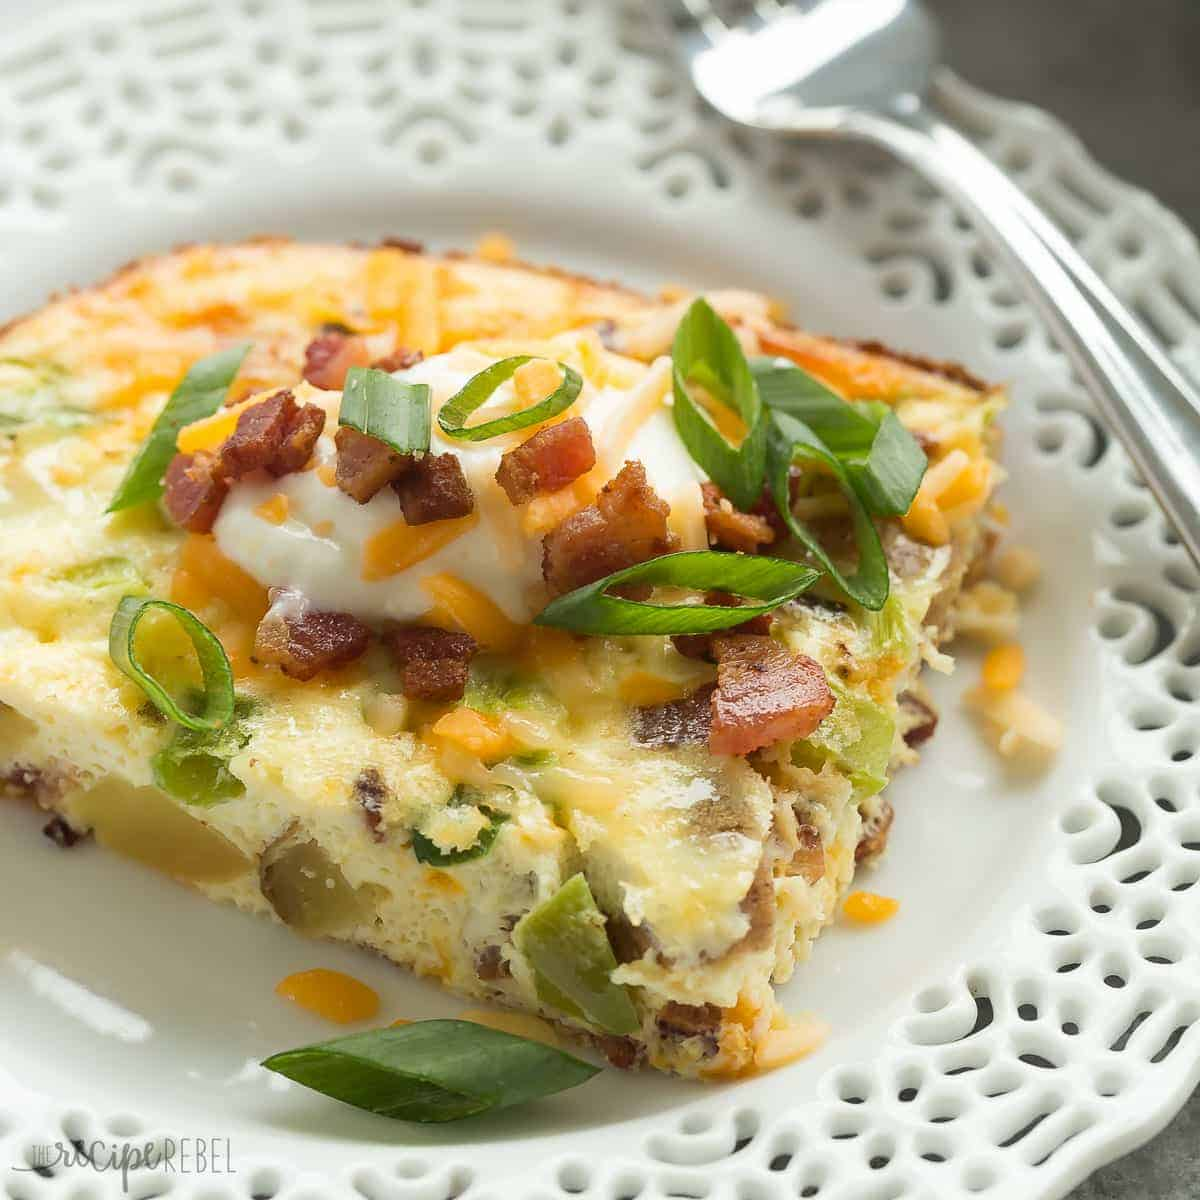 This Loaded Baked Potato Breakfast Casserole has all of your favorites: potatoes, bacon, eggs, sour cream, cheese, peppers and onions! It's easy to make ahead and is a great healthy breakfast option for the holidays!